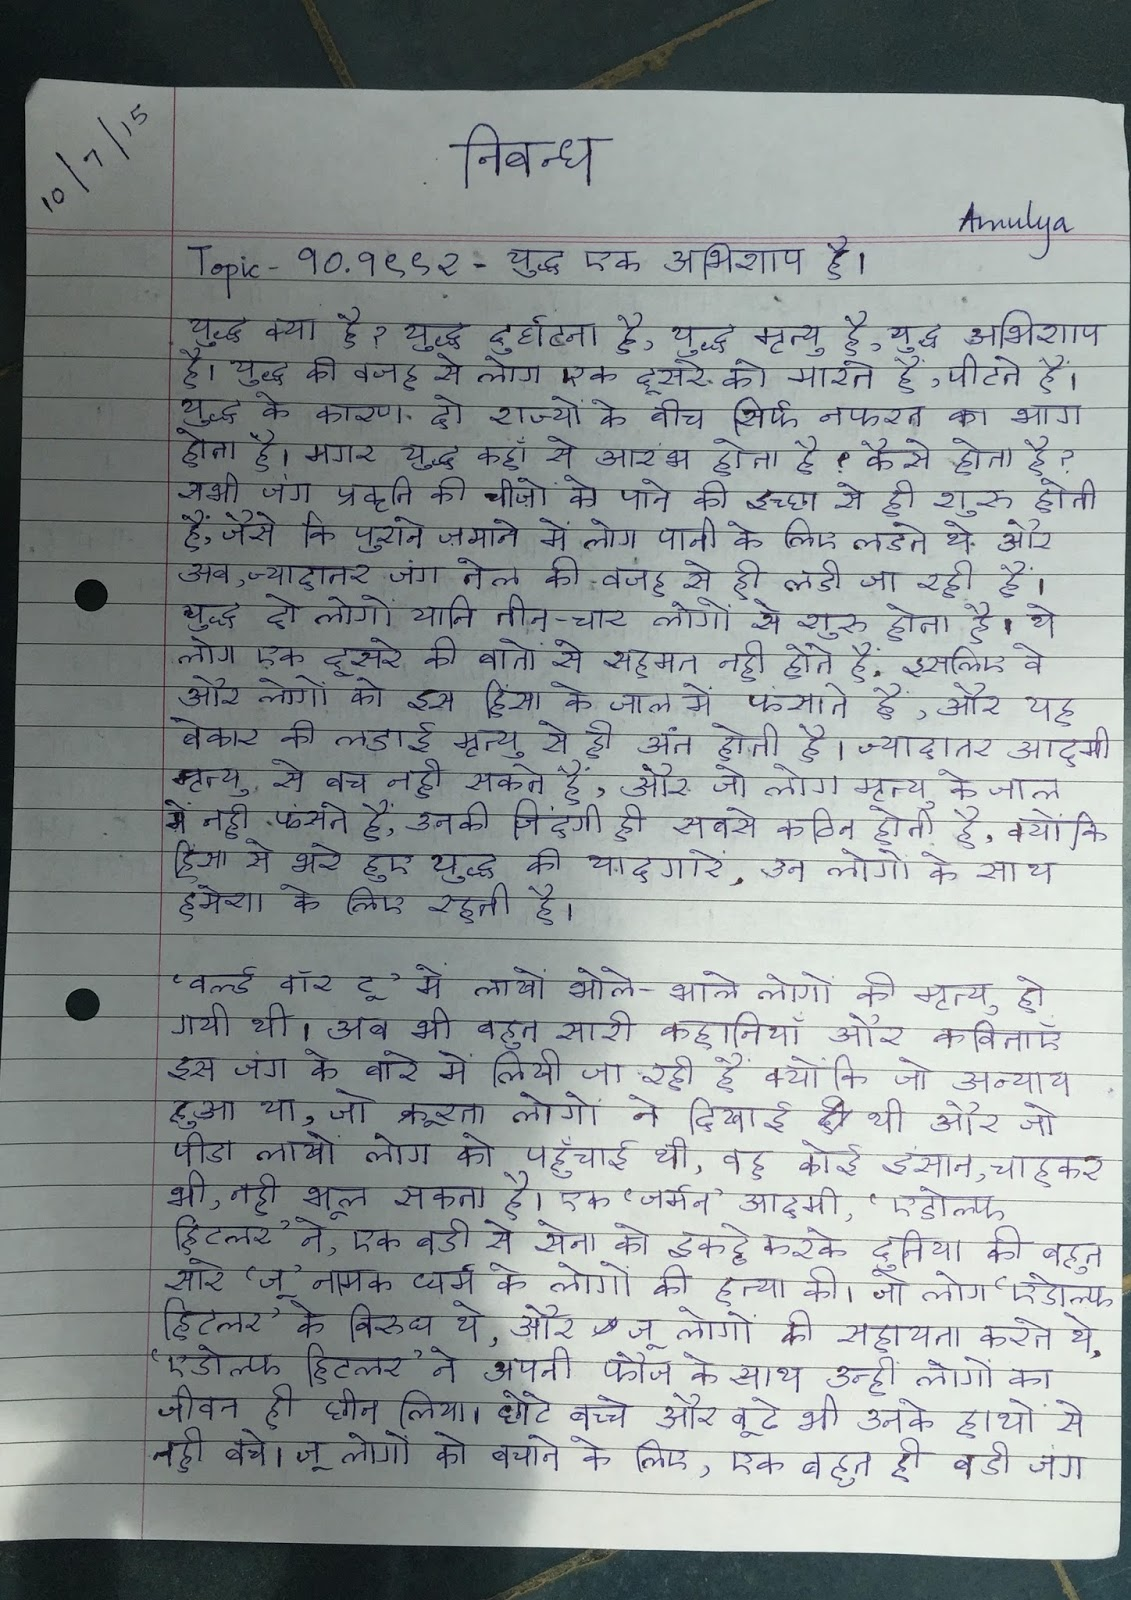 015 My Country Essay In Hindi Page201 Phenomenal 10 Lines Is Great Full